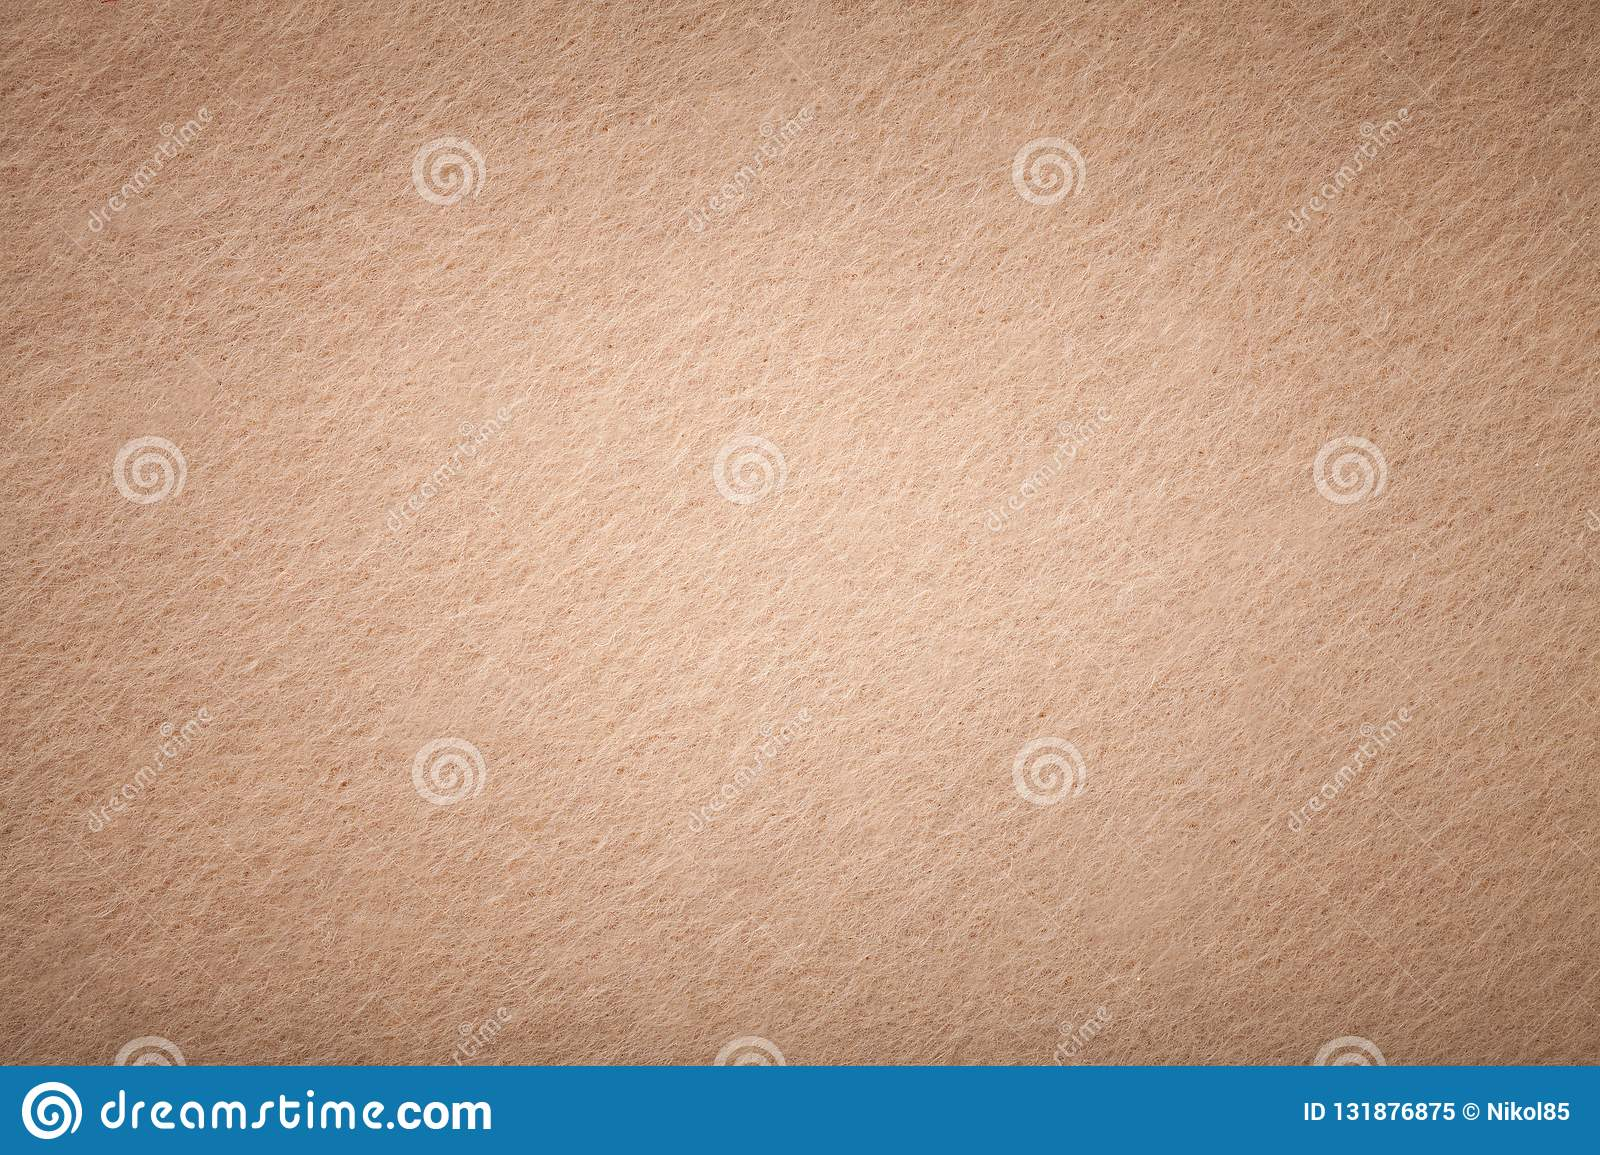 491 Felt Fabric Texture Beige Photos Free Royalty Free Stock Photos From Dreamstime